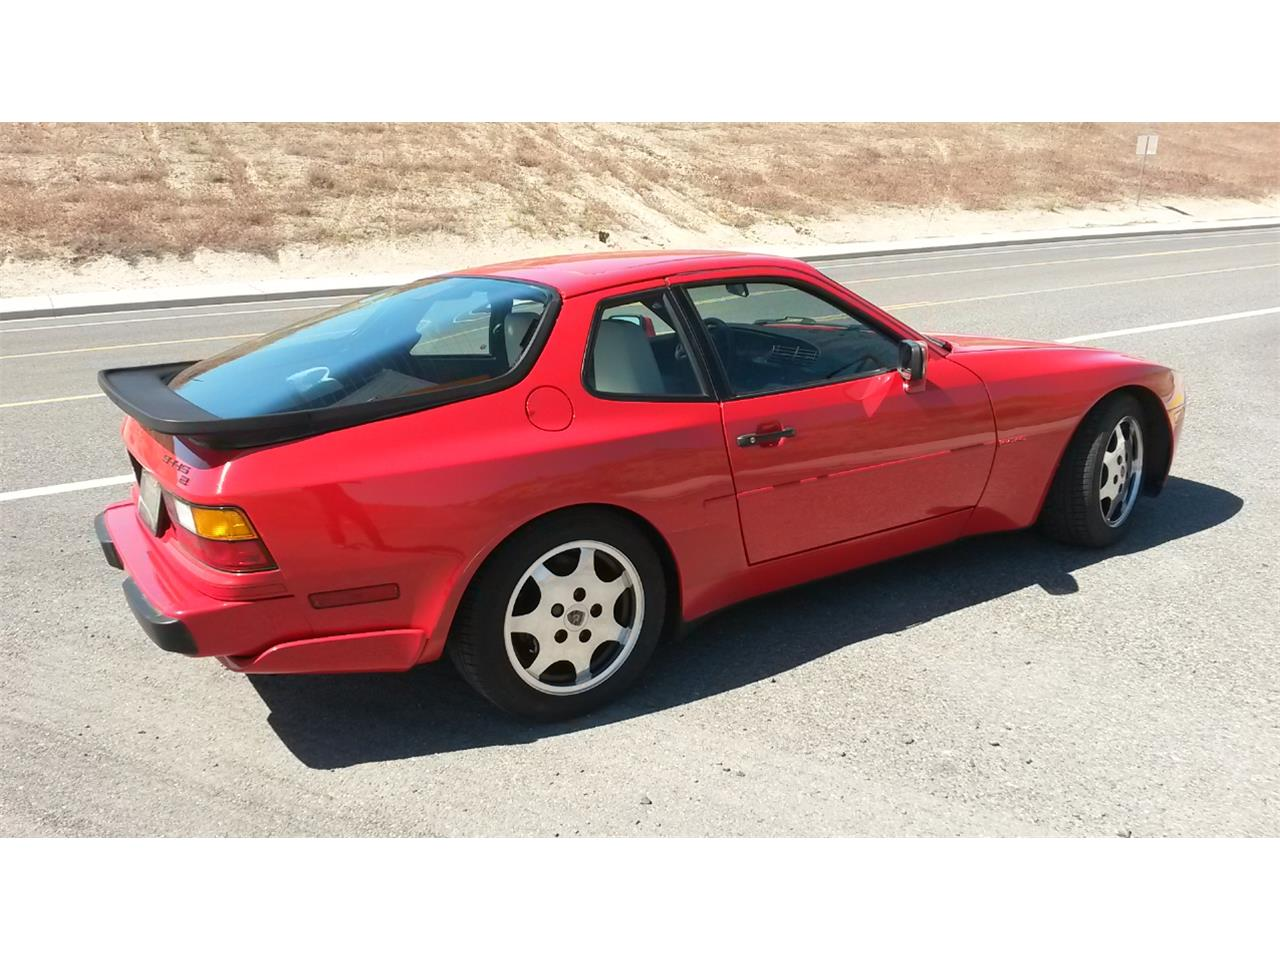 Large Picture of '89 Porsche 944S2 located in Kennewick Washington - $25,000.00 - L7PM